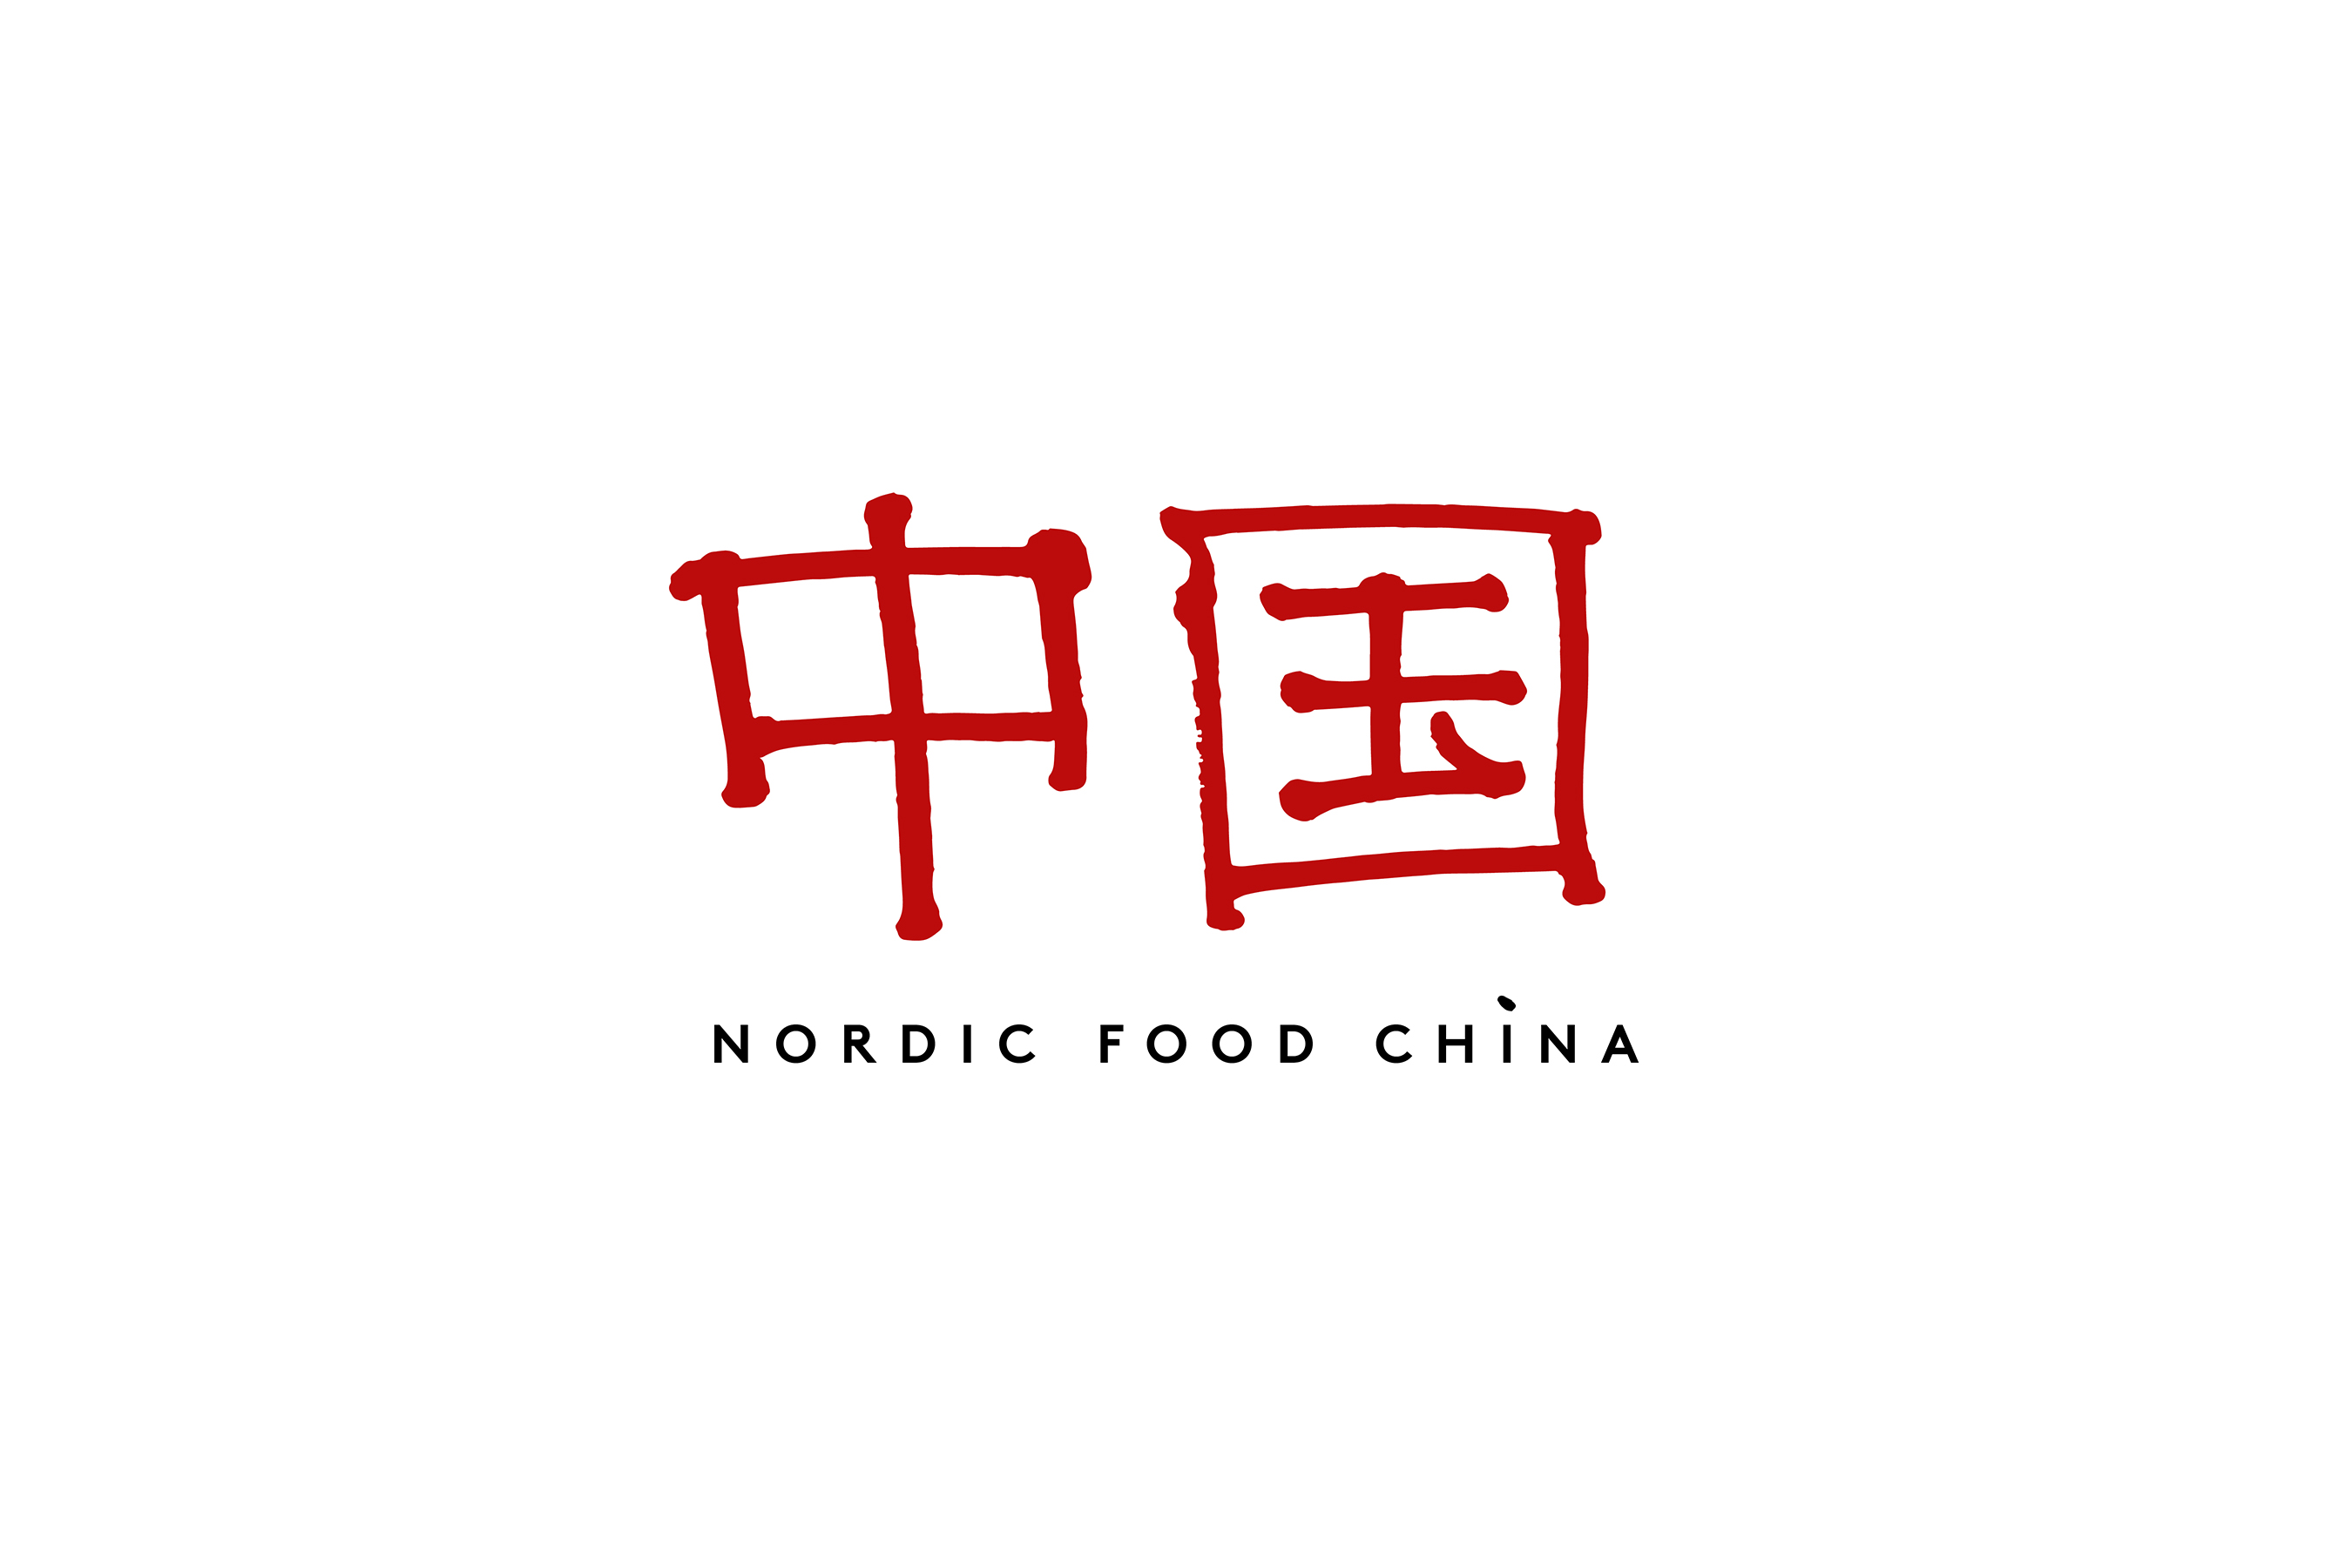 Nordic Food China – Consumer Insight Report by Kuudes